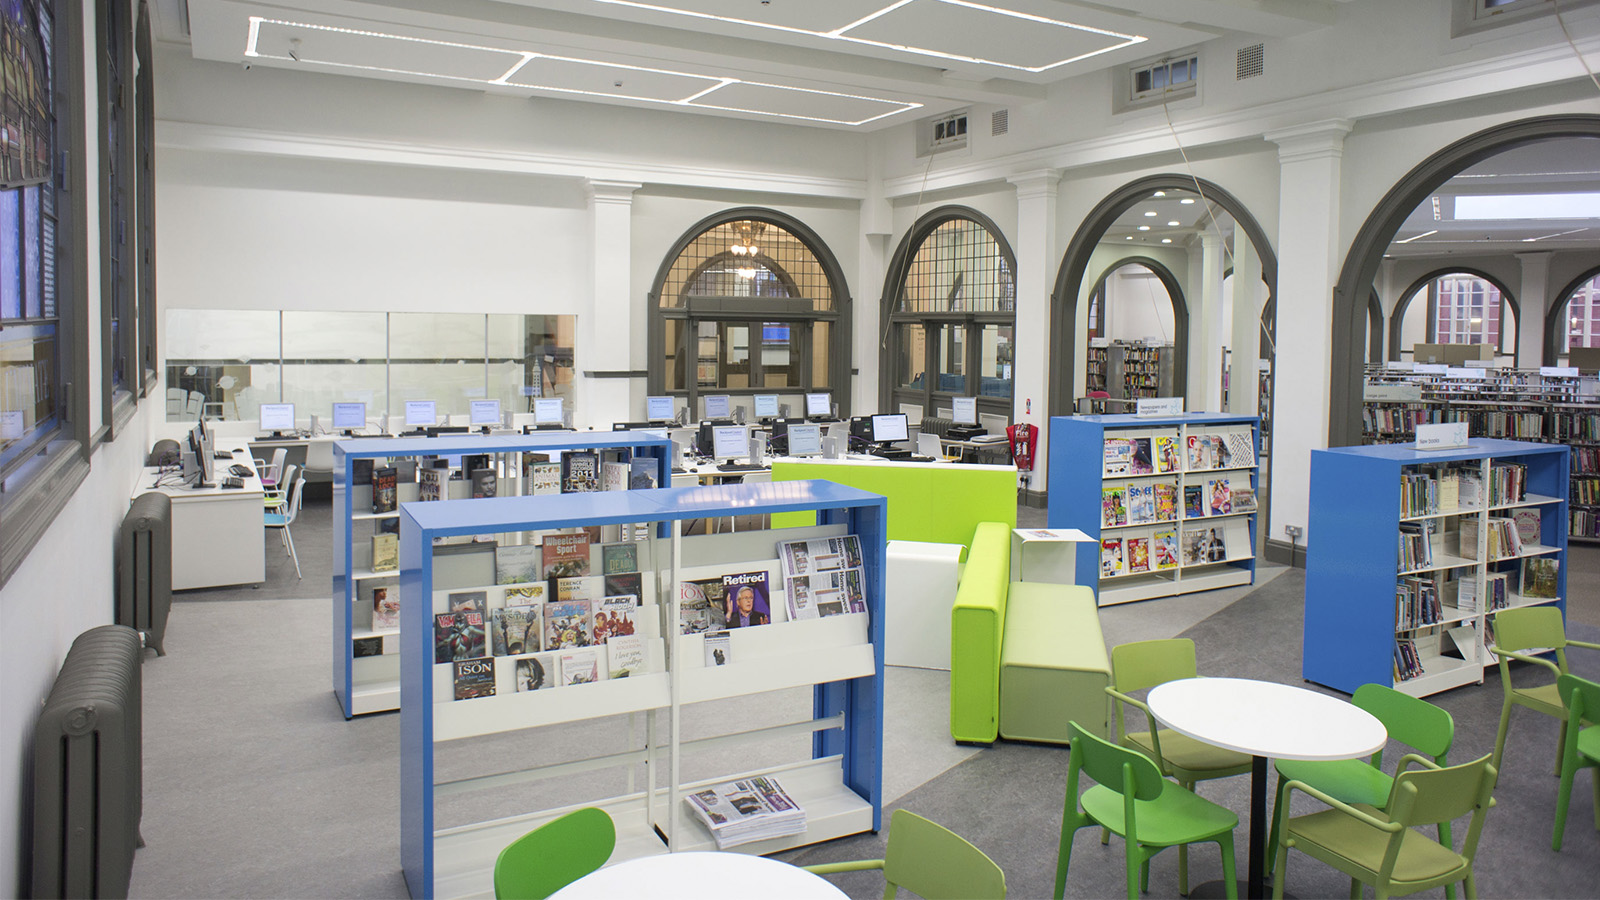 Blackpool City Library, England